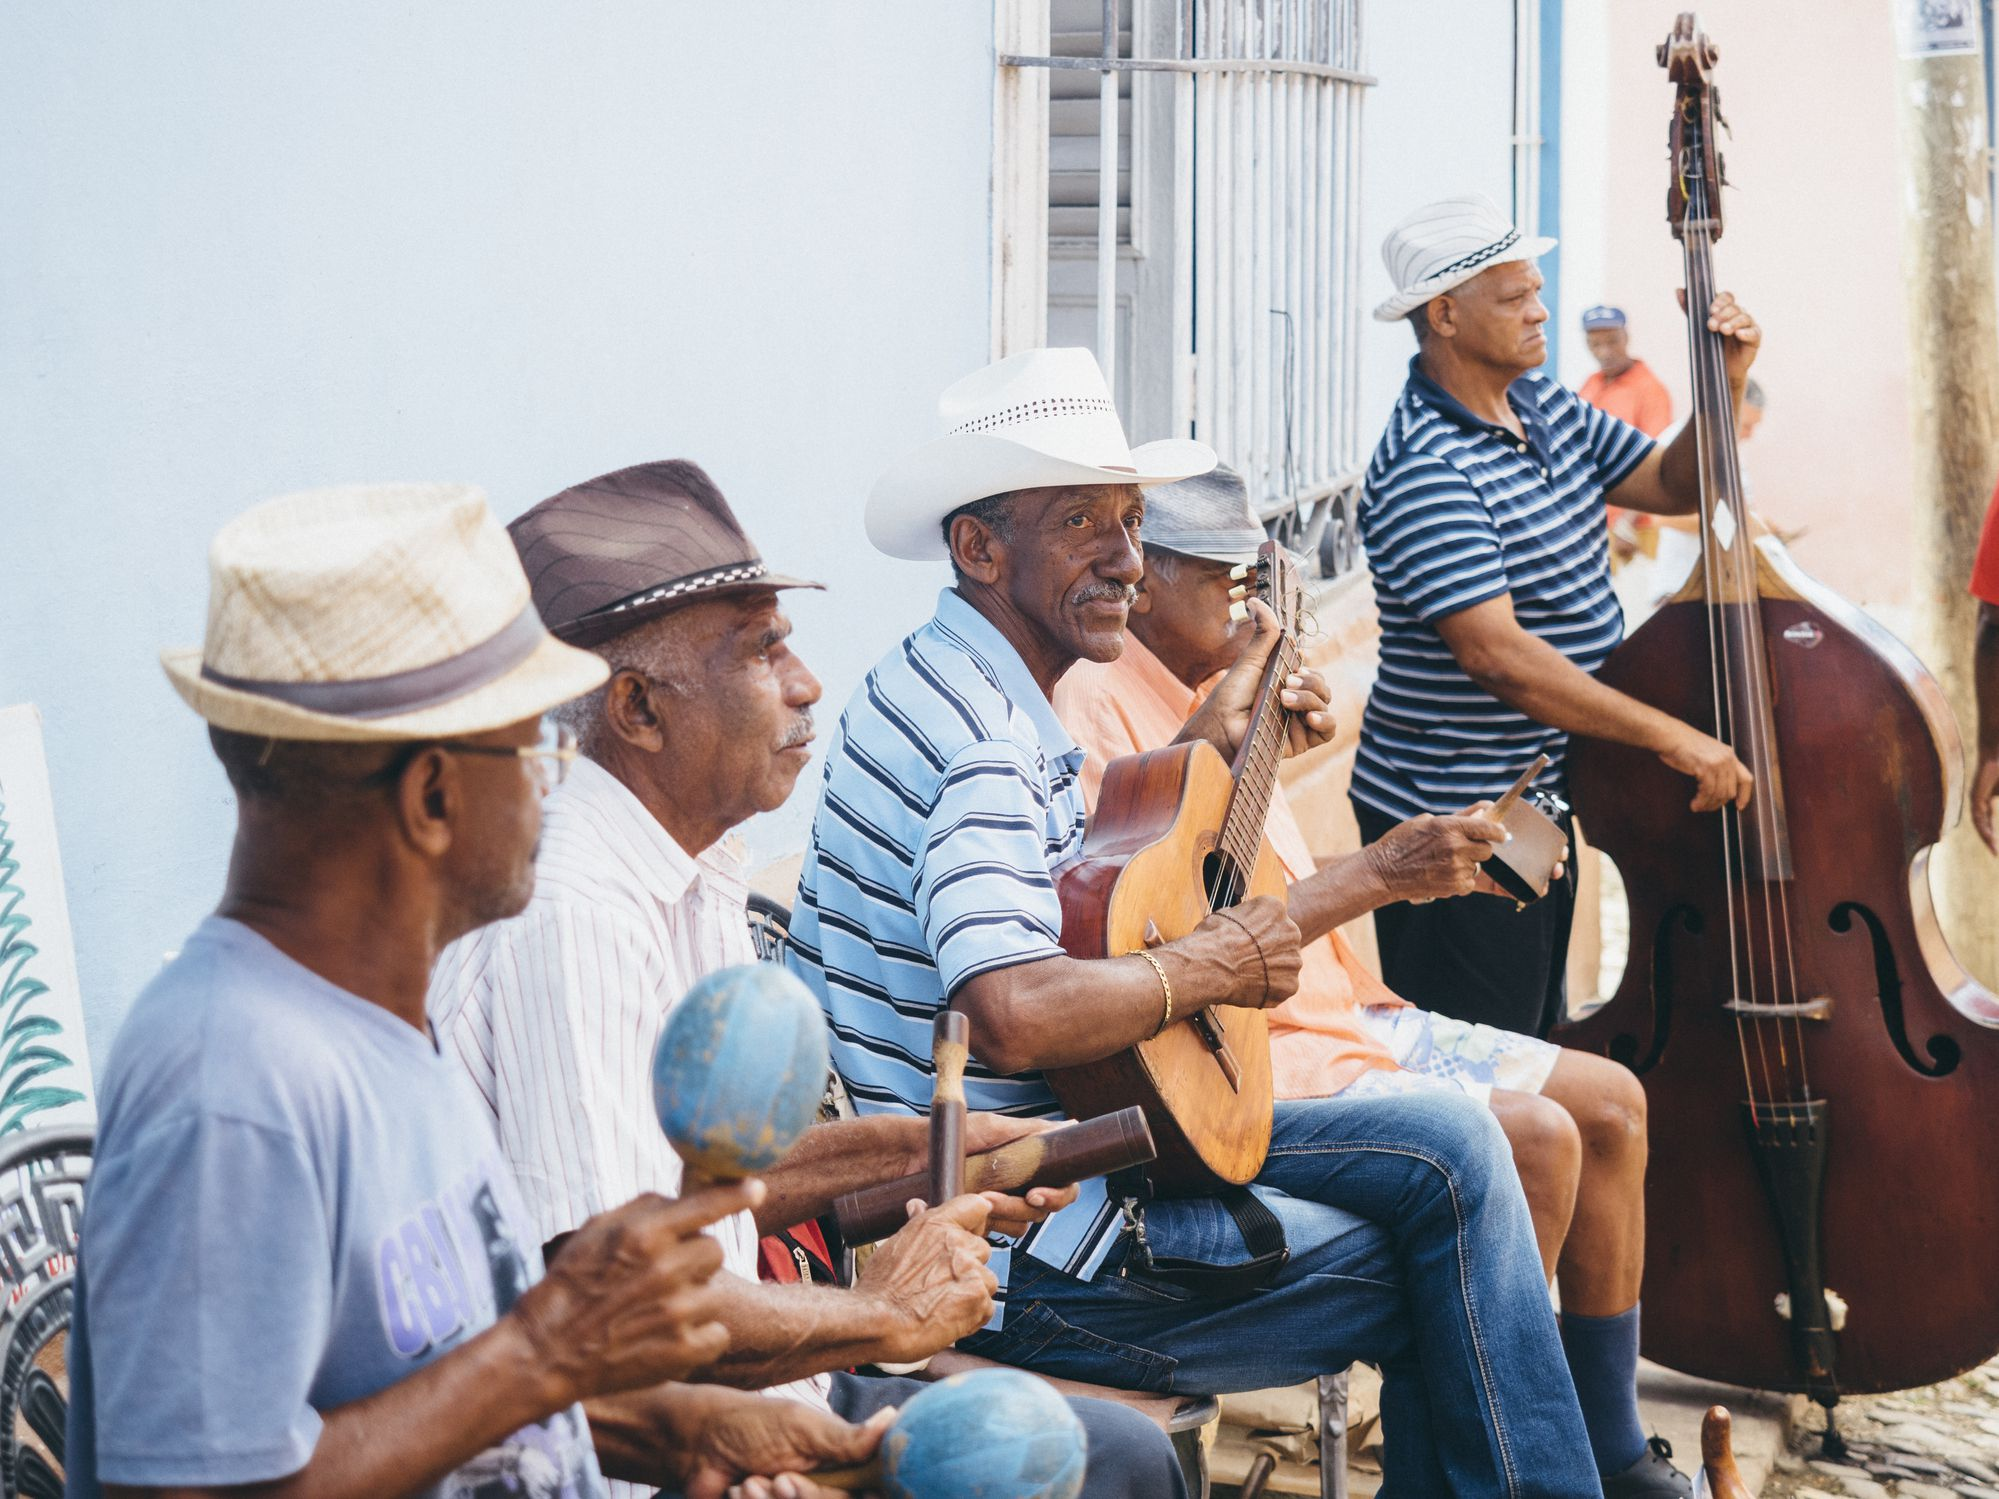 What Kinds of Music Come from the Caribbean?